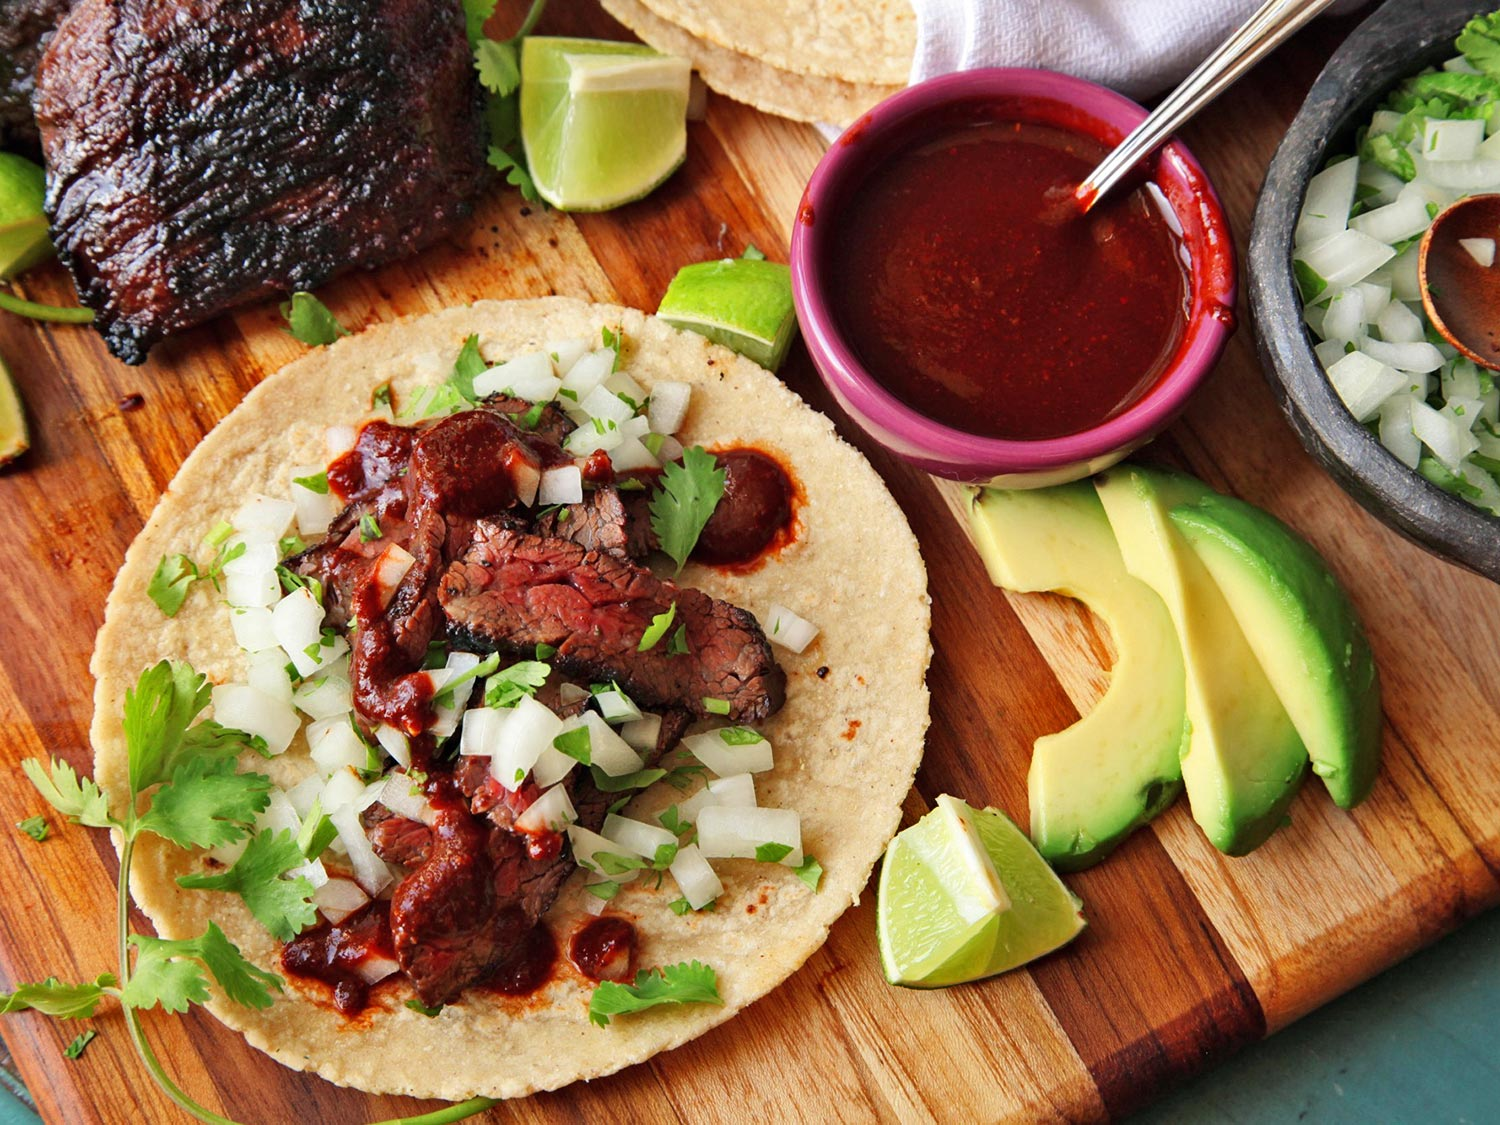 - simple carne asada tacosItems we carry for this dish: Seasoning, spices, marinades